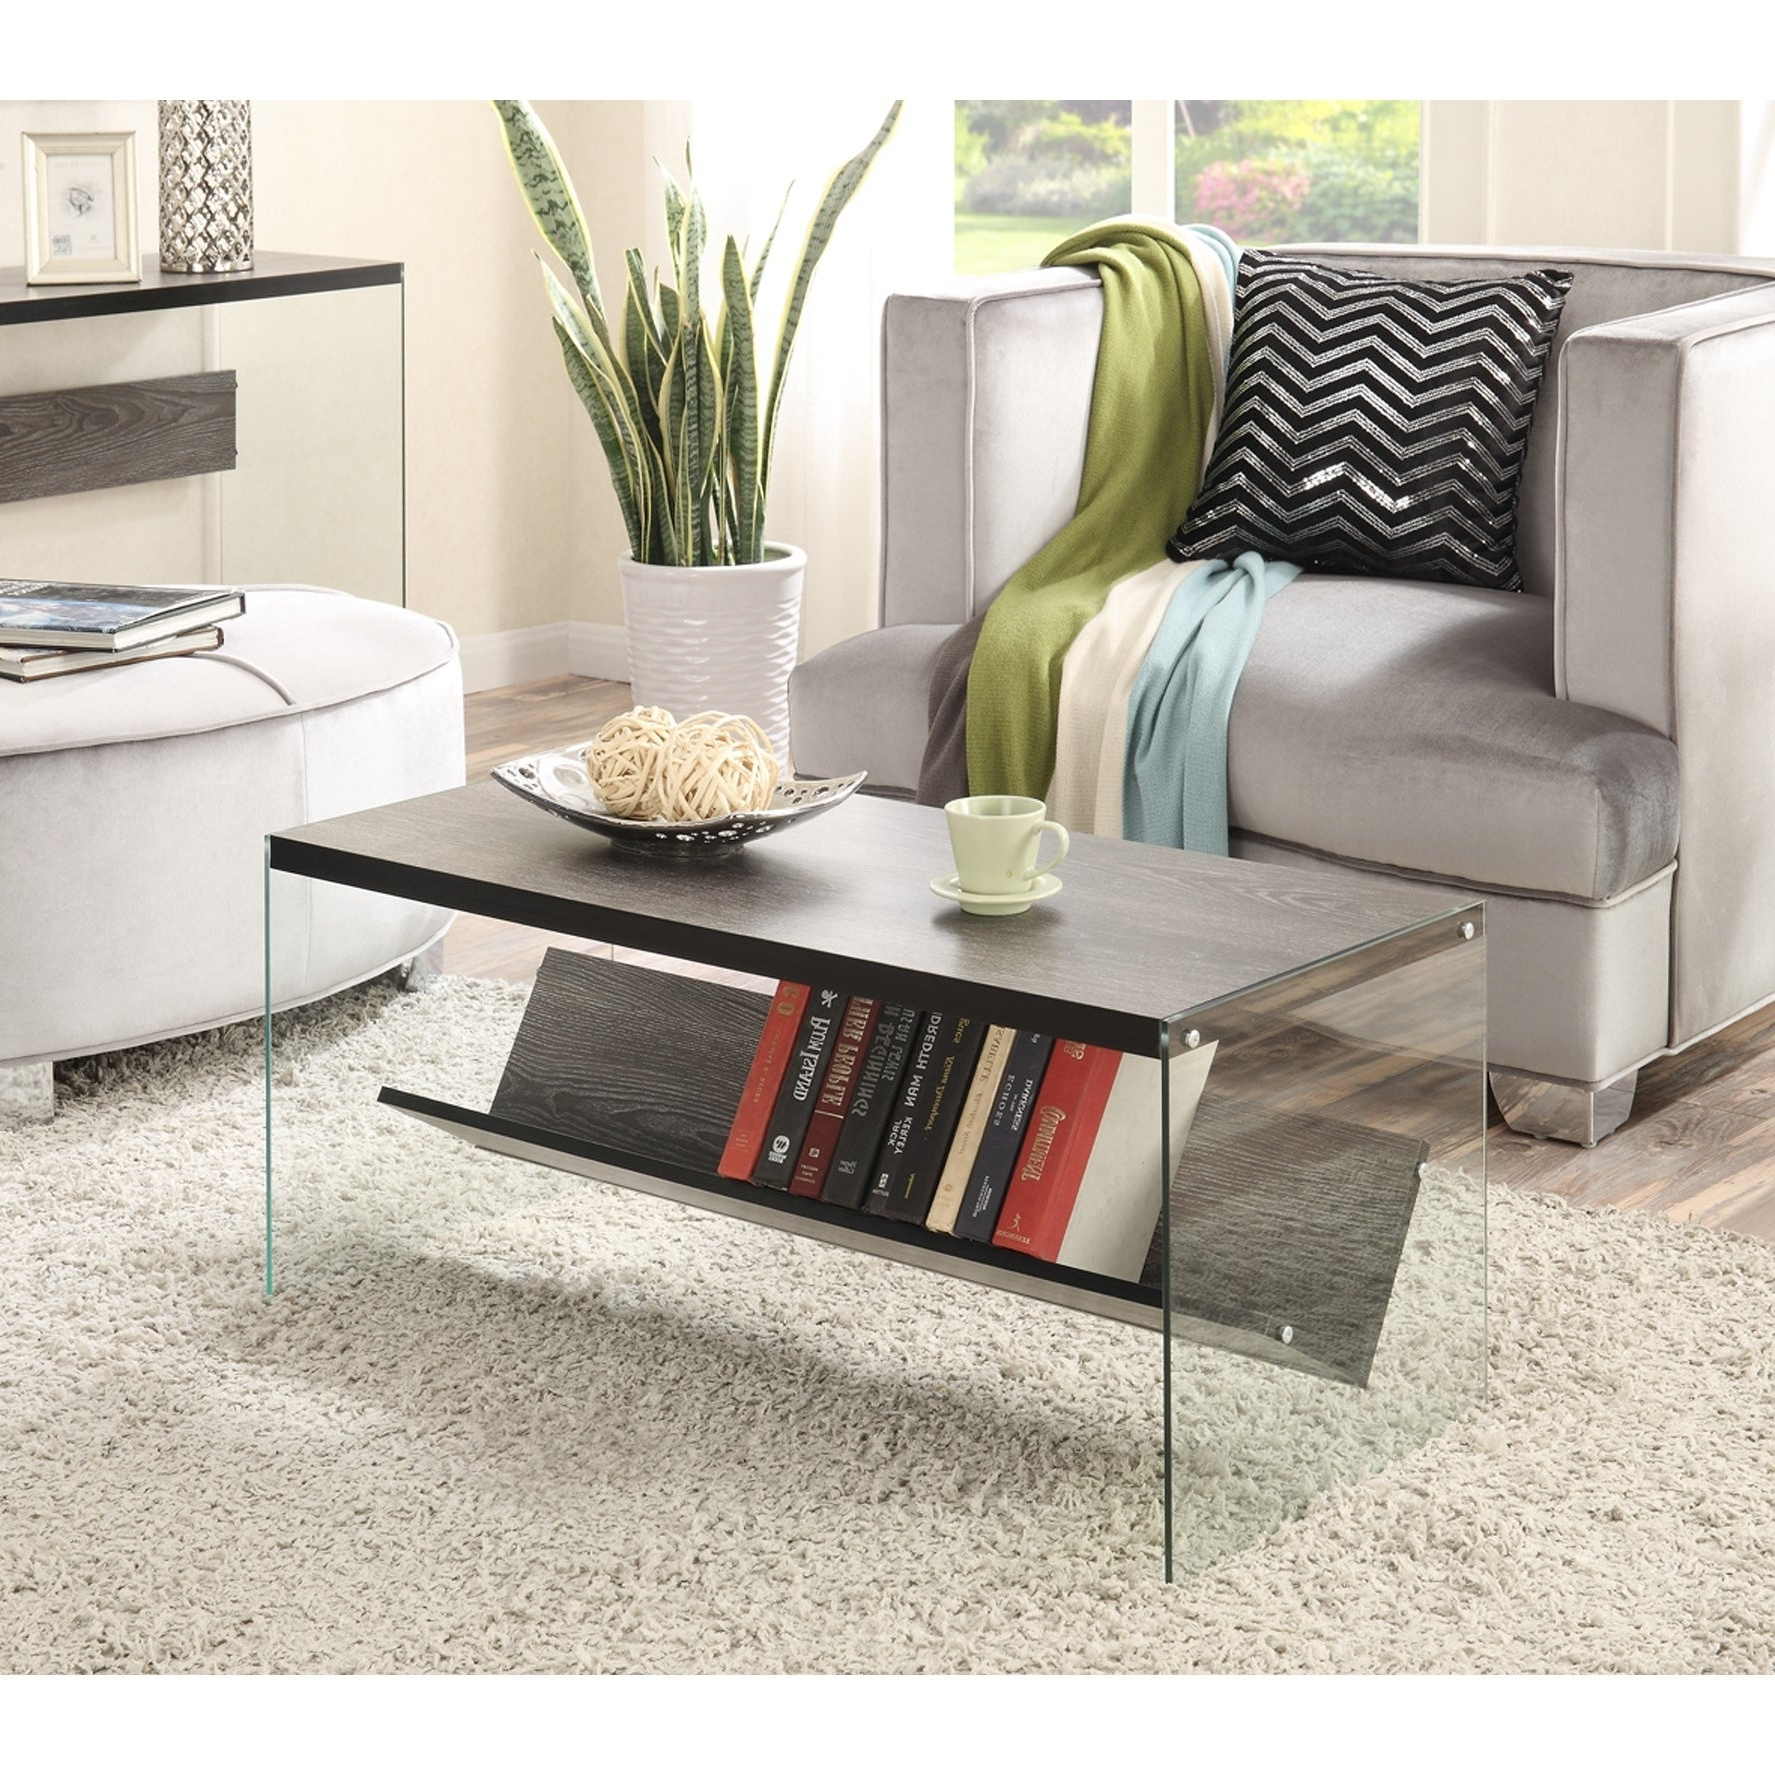 2020 Porch & Den Urqhuart Wood Glass Coffee Tables Throughout Porch & Den Urqhuart Wood/ Glass Coffee Table (Gallery 5 of 20)